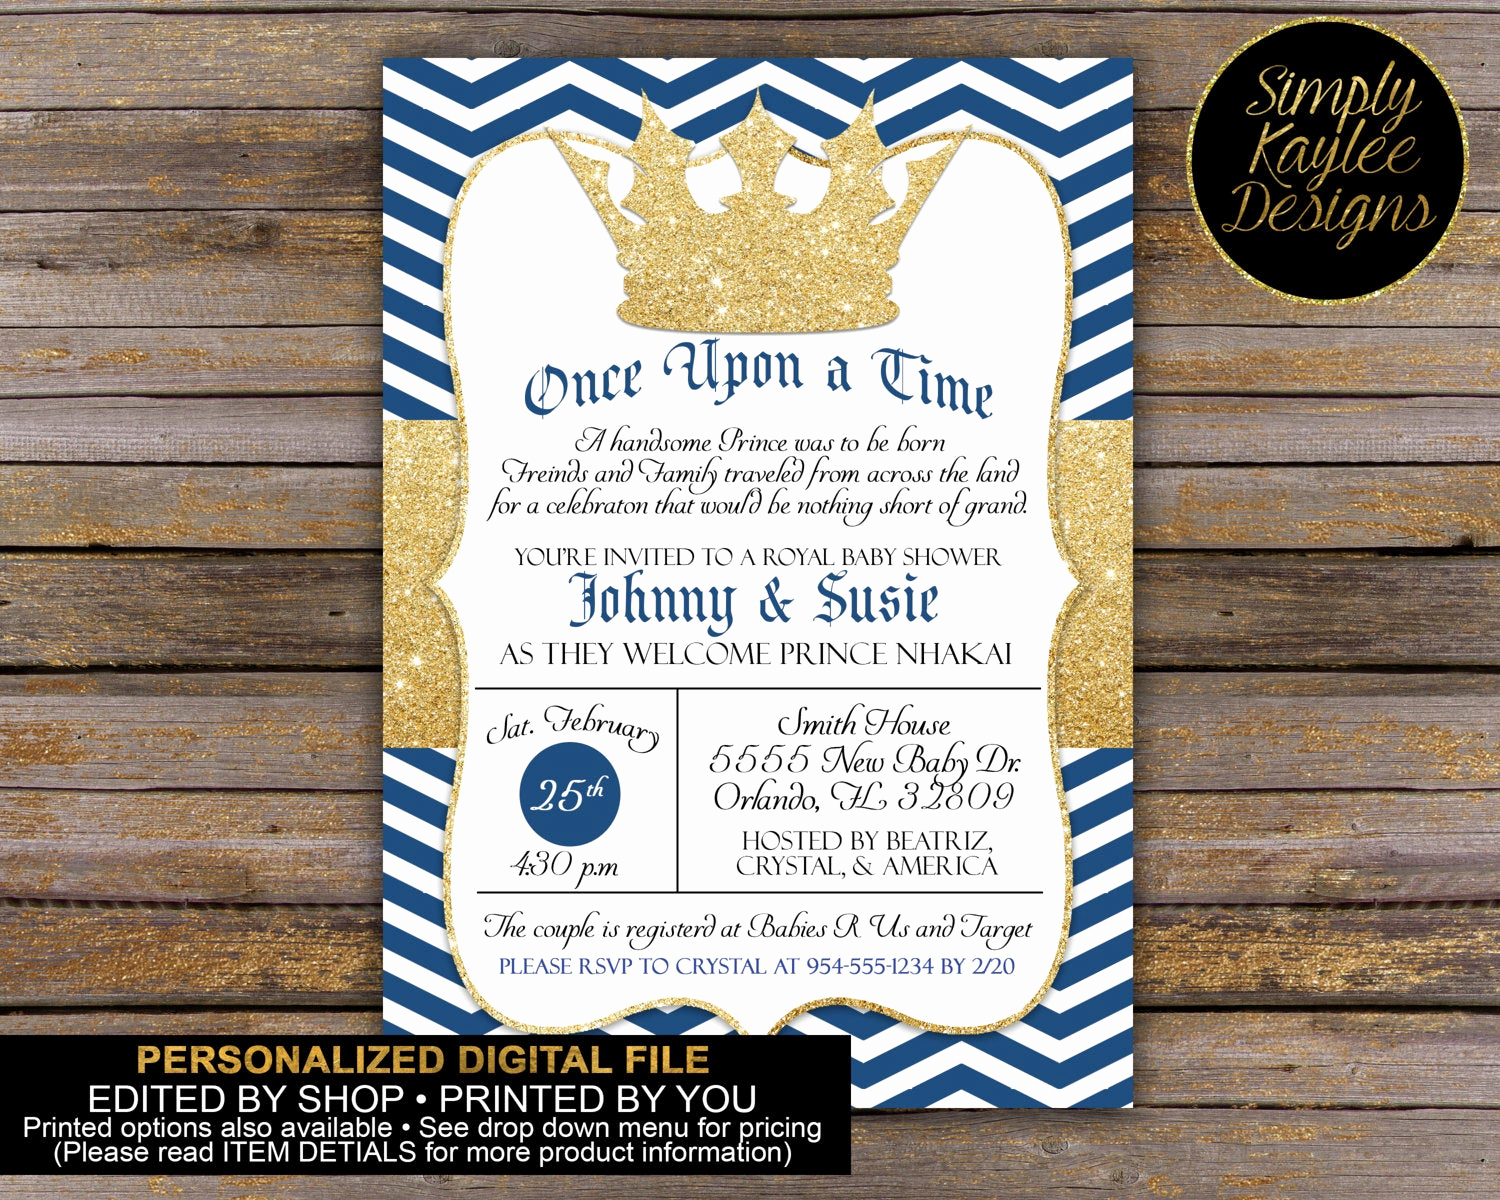 Royal Baby Shower Invitation Wording Unique Royal Baby Shower Invitation Little Prince Baby Shower